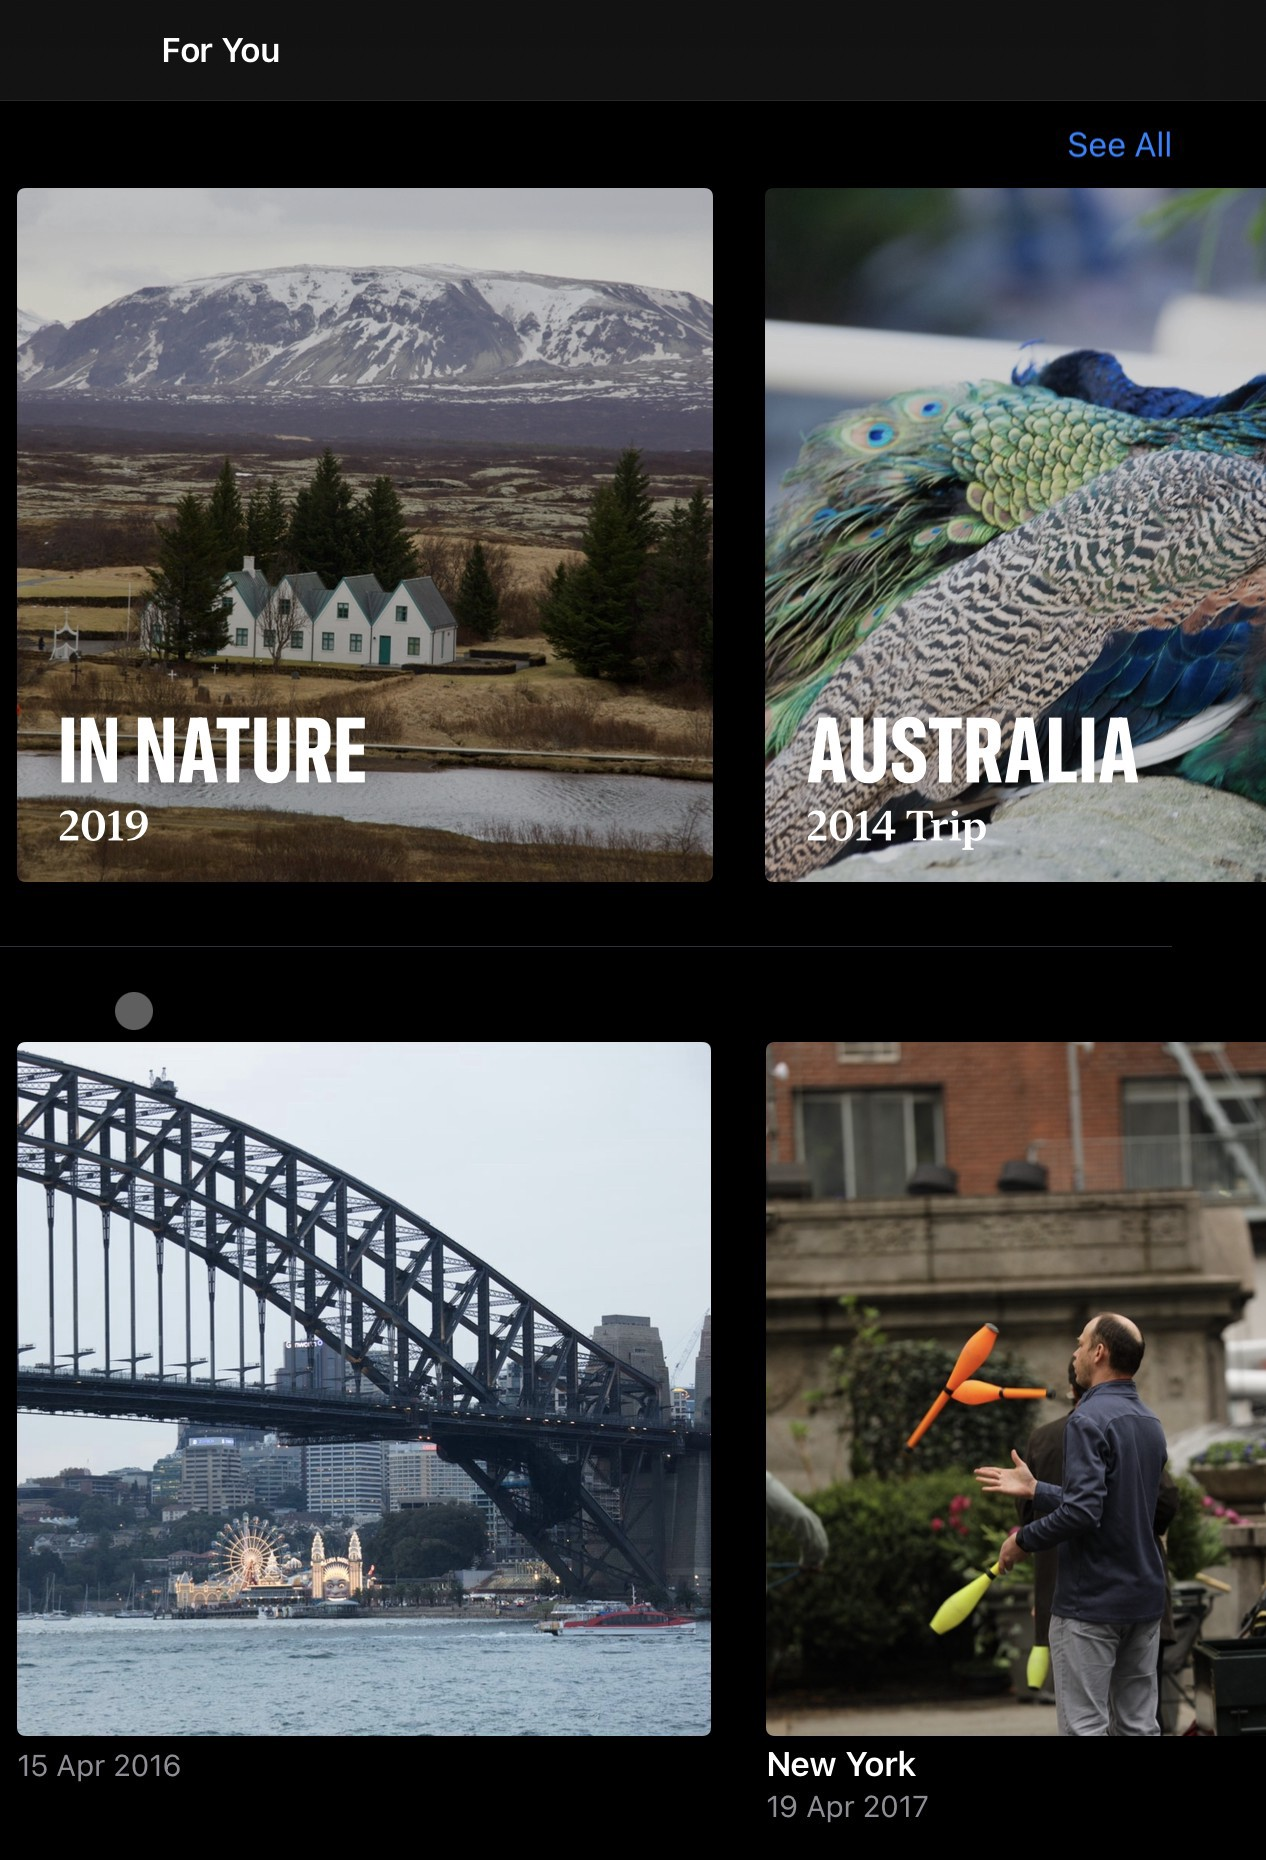 Four albums of Iceland, Australia and New York created by Apple Photos